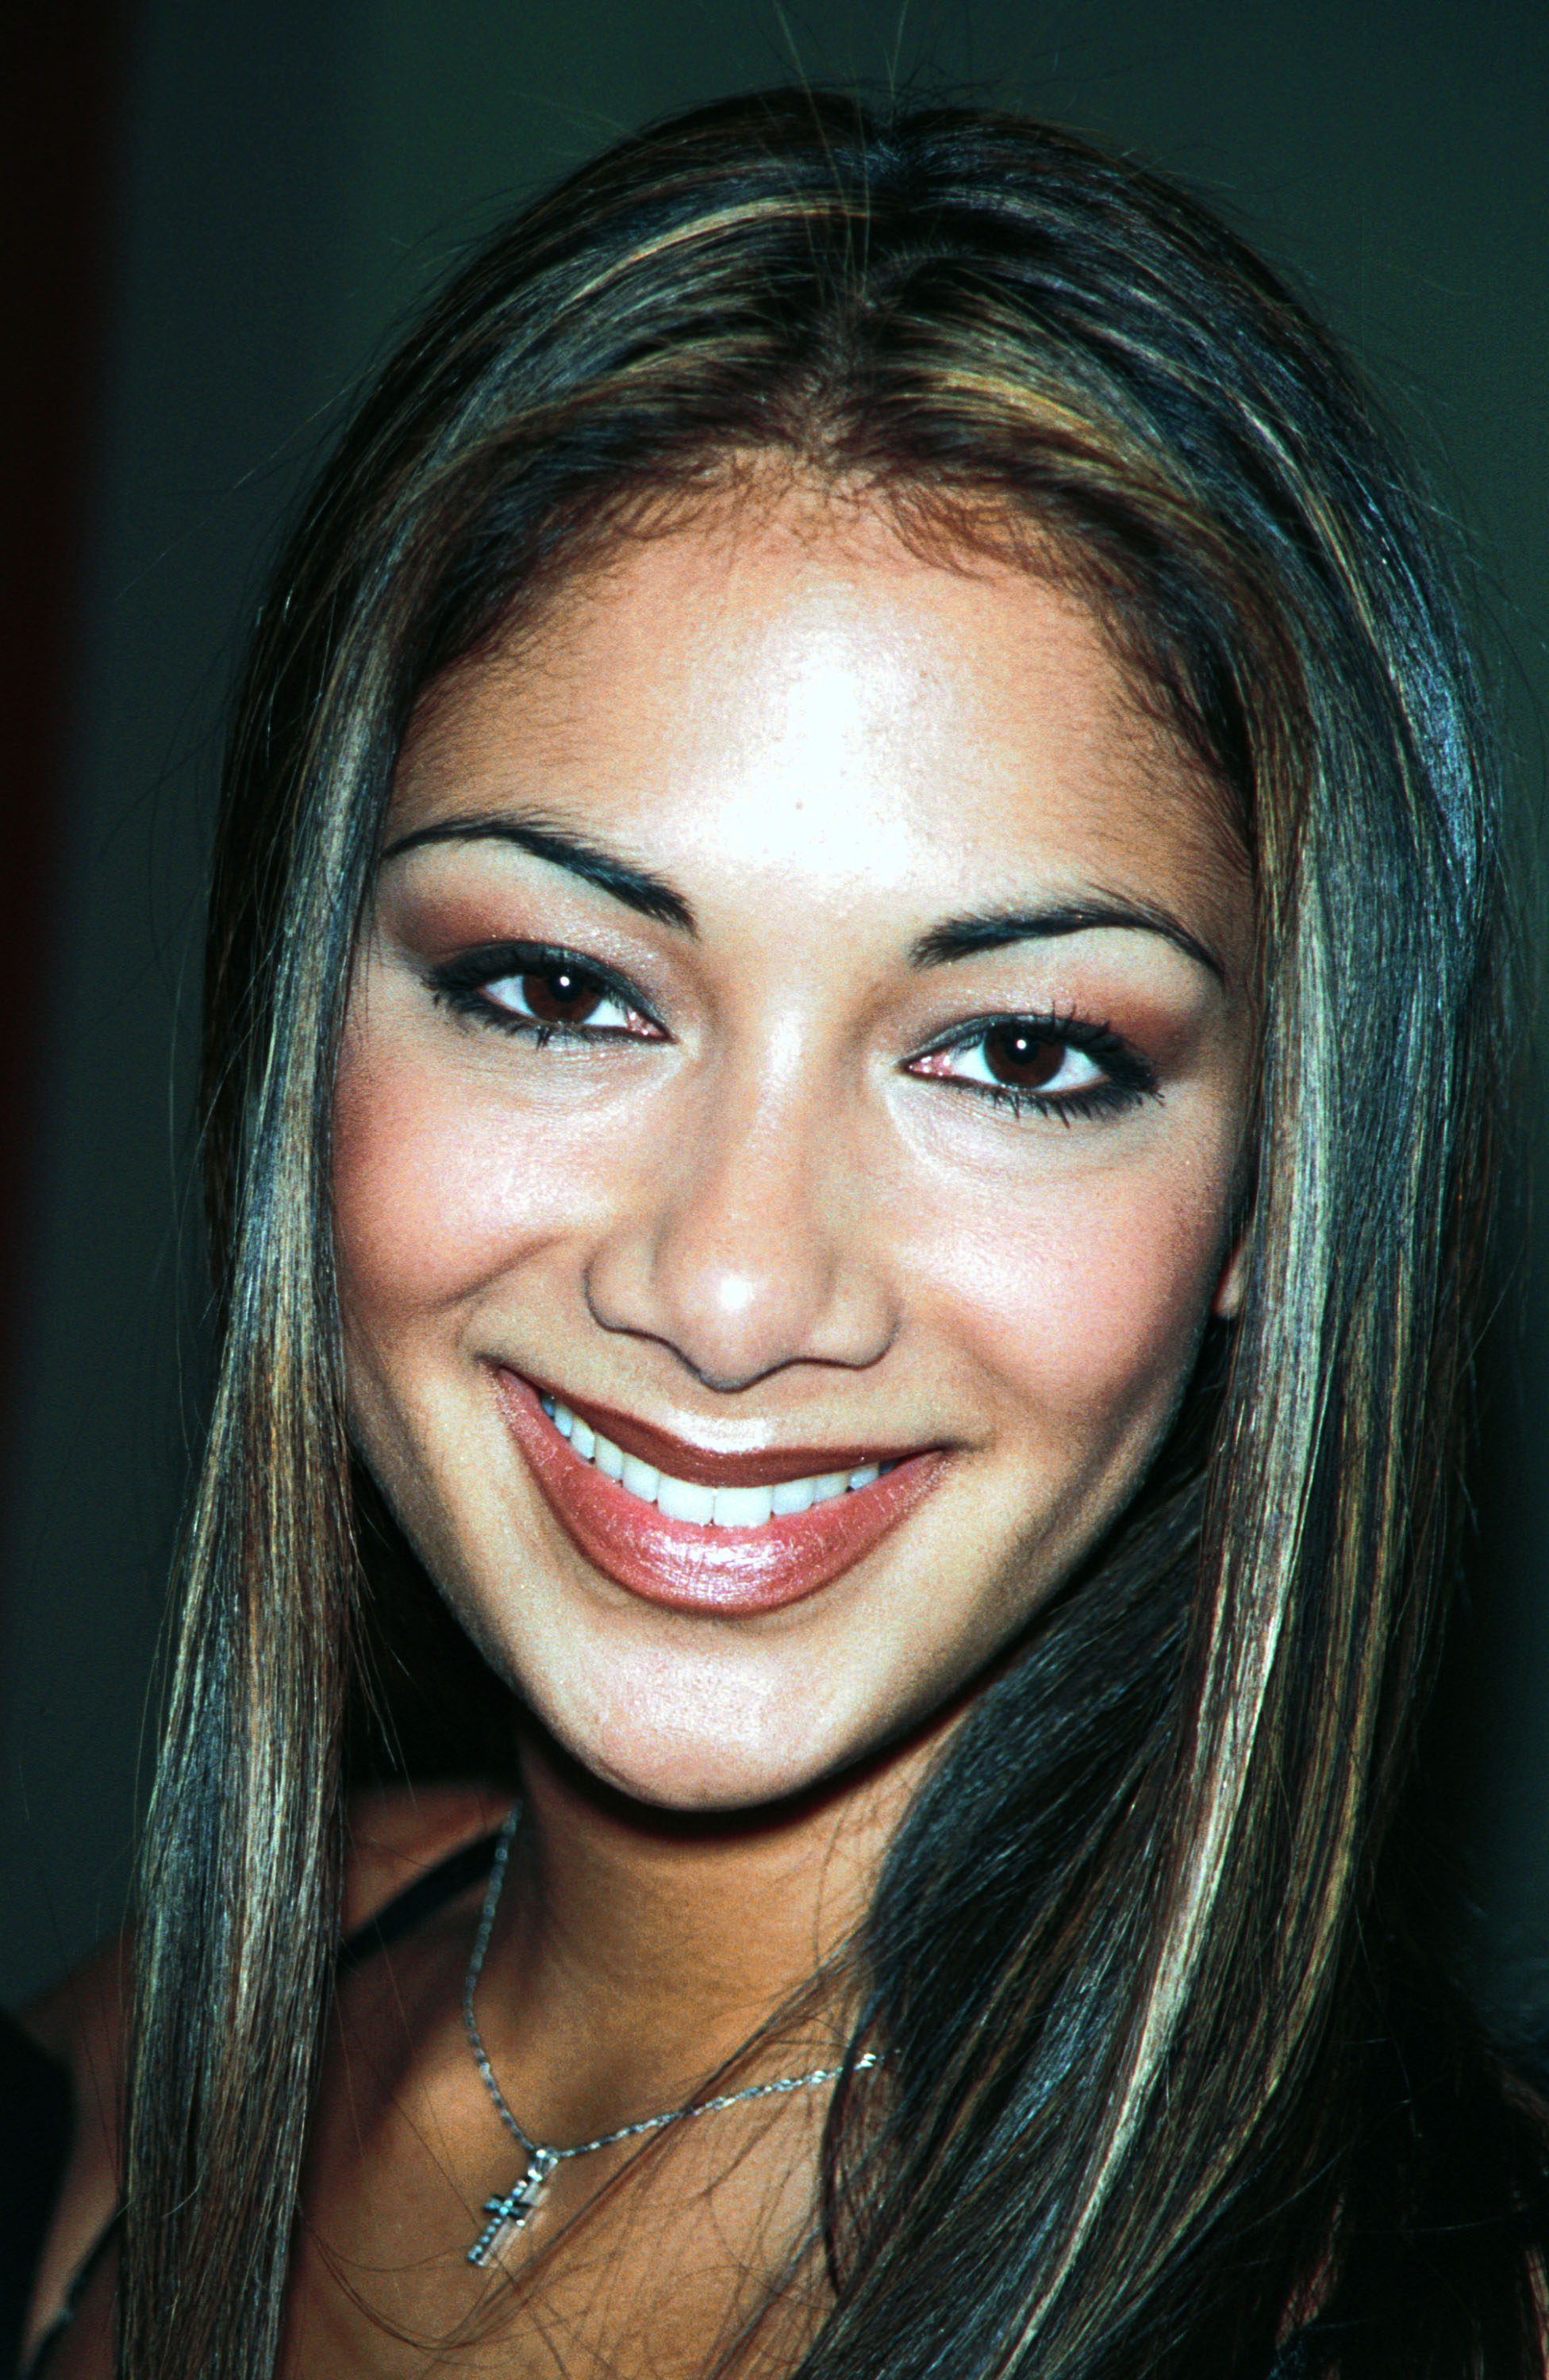 Sinlges nicole scherzinger pictures before boob job proximity